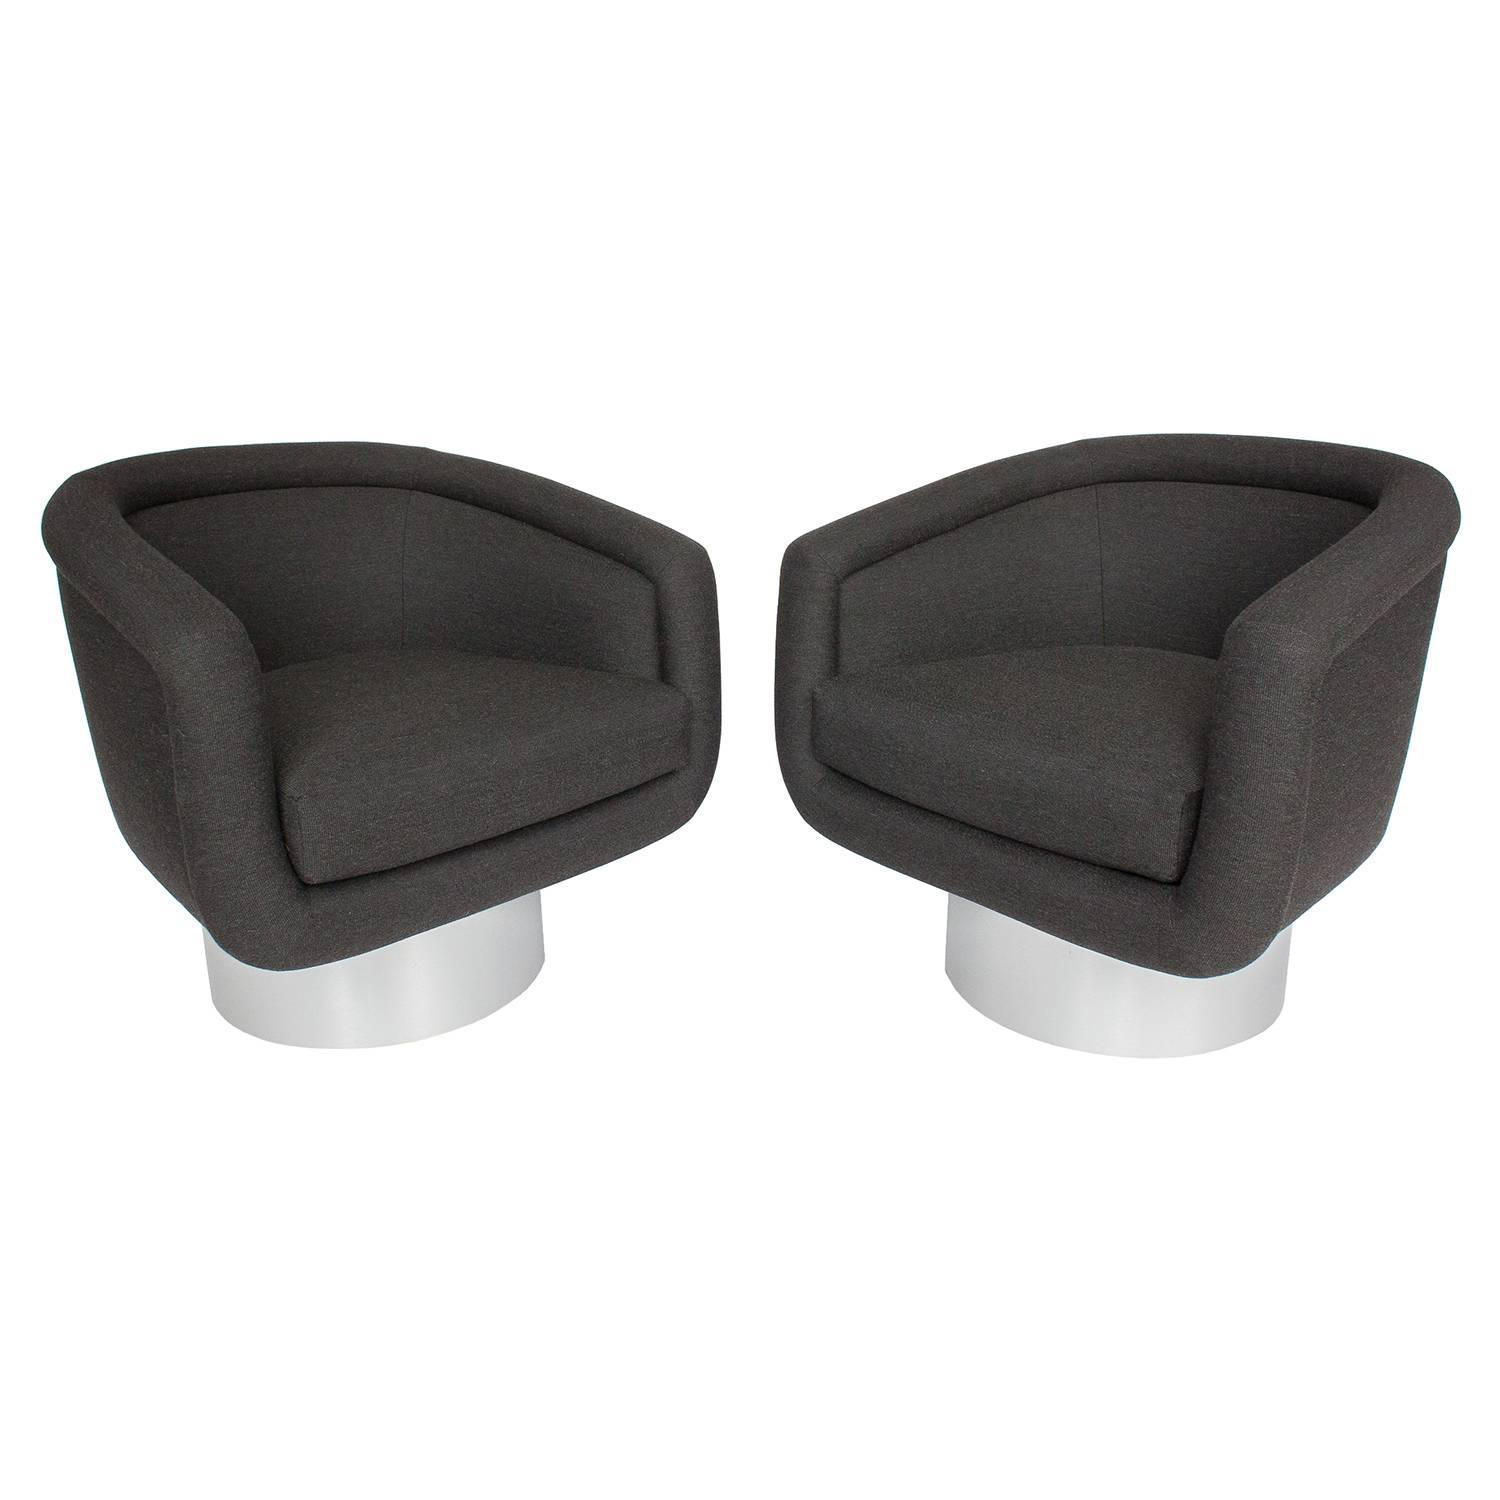 swivel chair leons table and chairs garden set b m pair of leon rosen pedestal lounge at 1stdibs